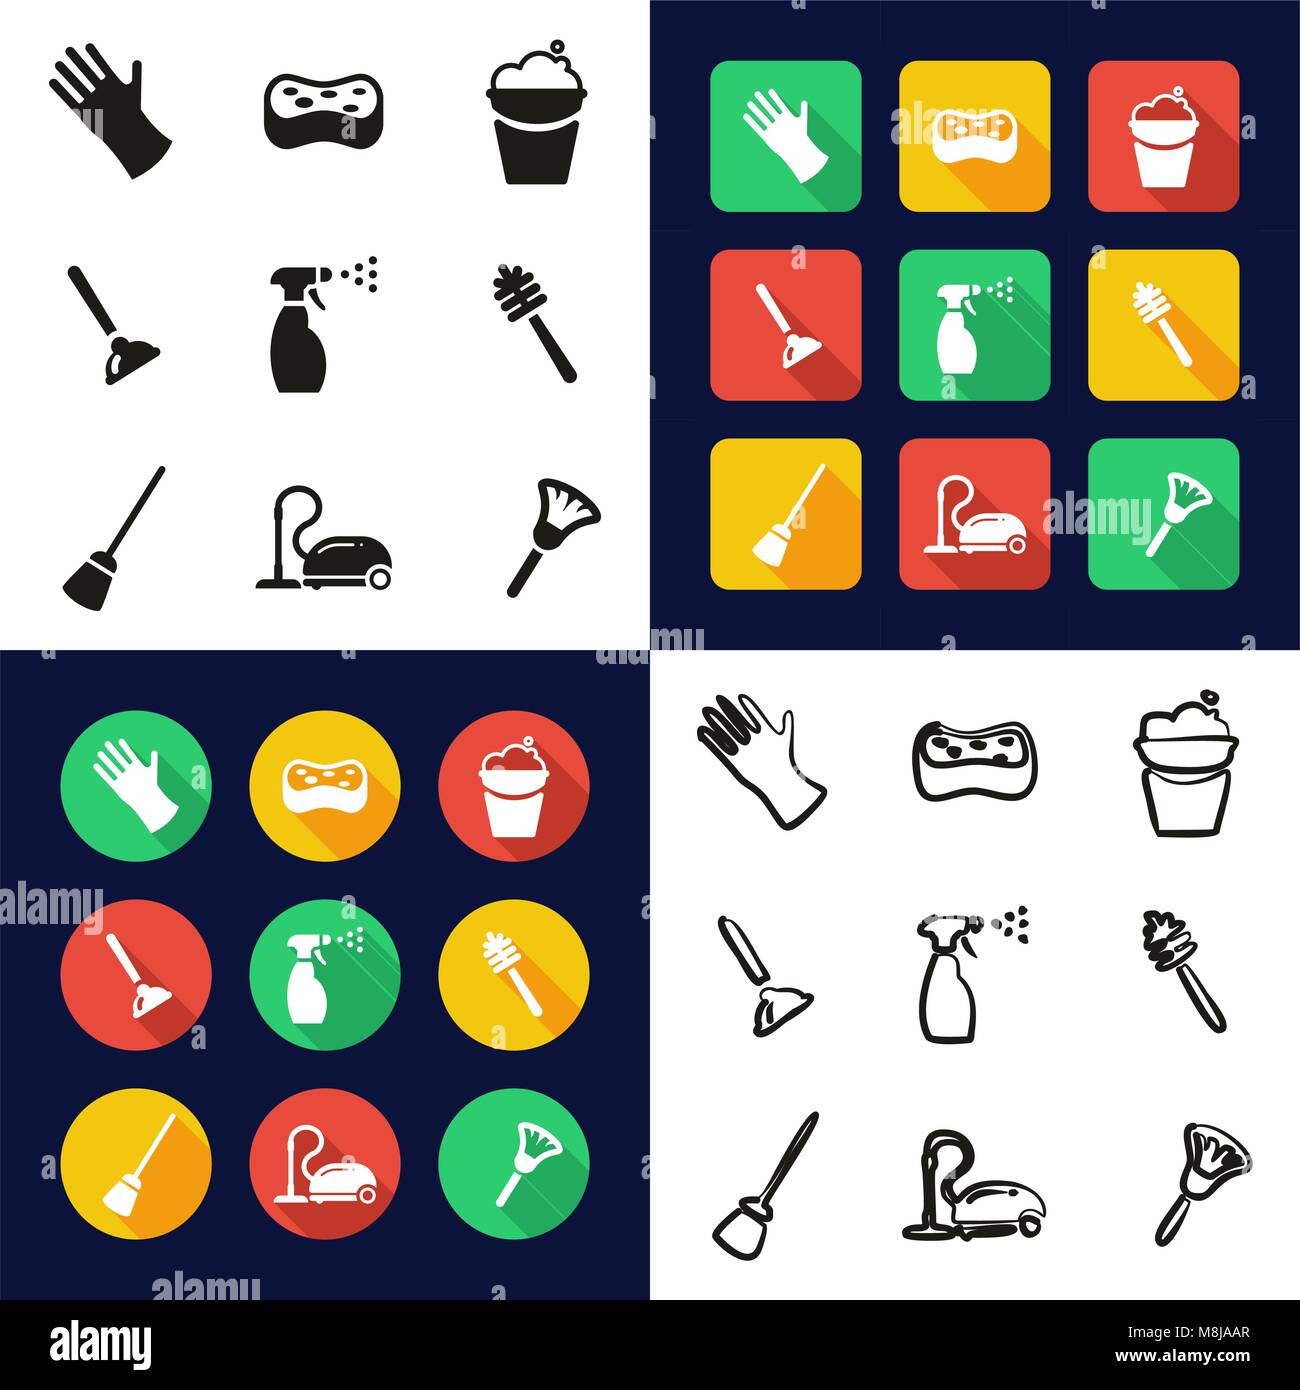 Cleaning All in One Icons Black & White Color Flat Design Freehand Set - Stock Vector